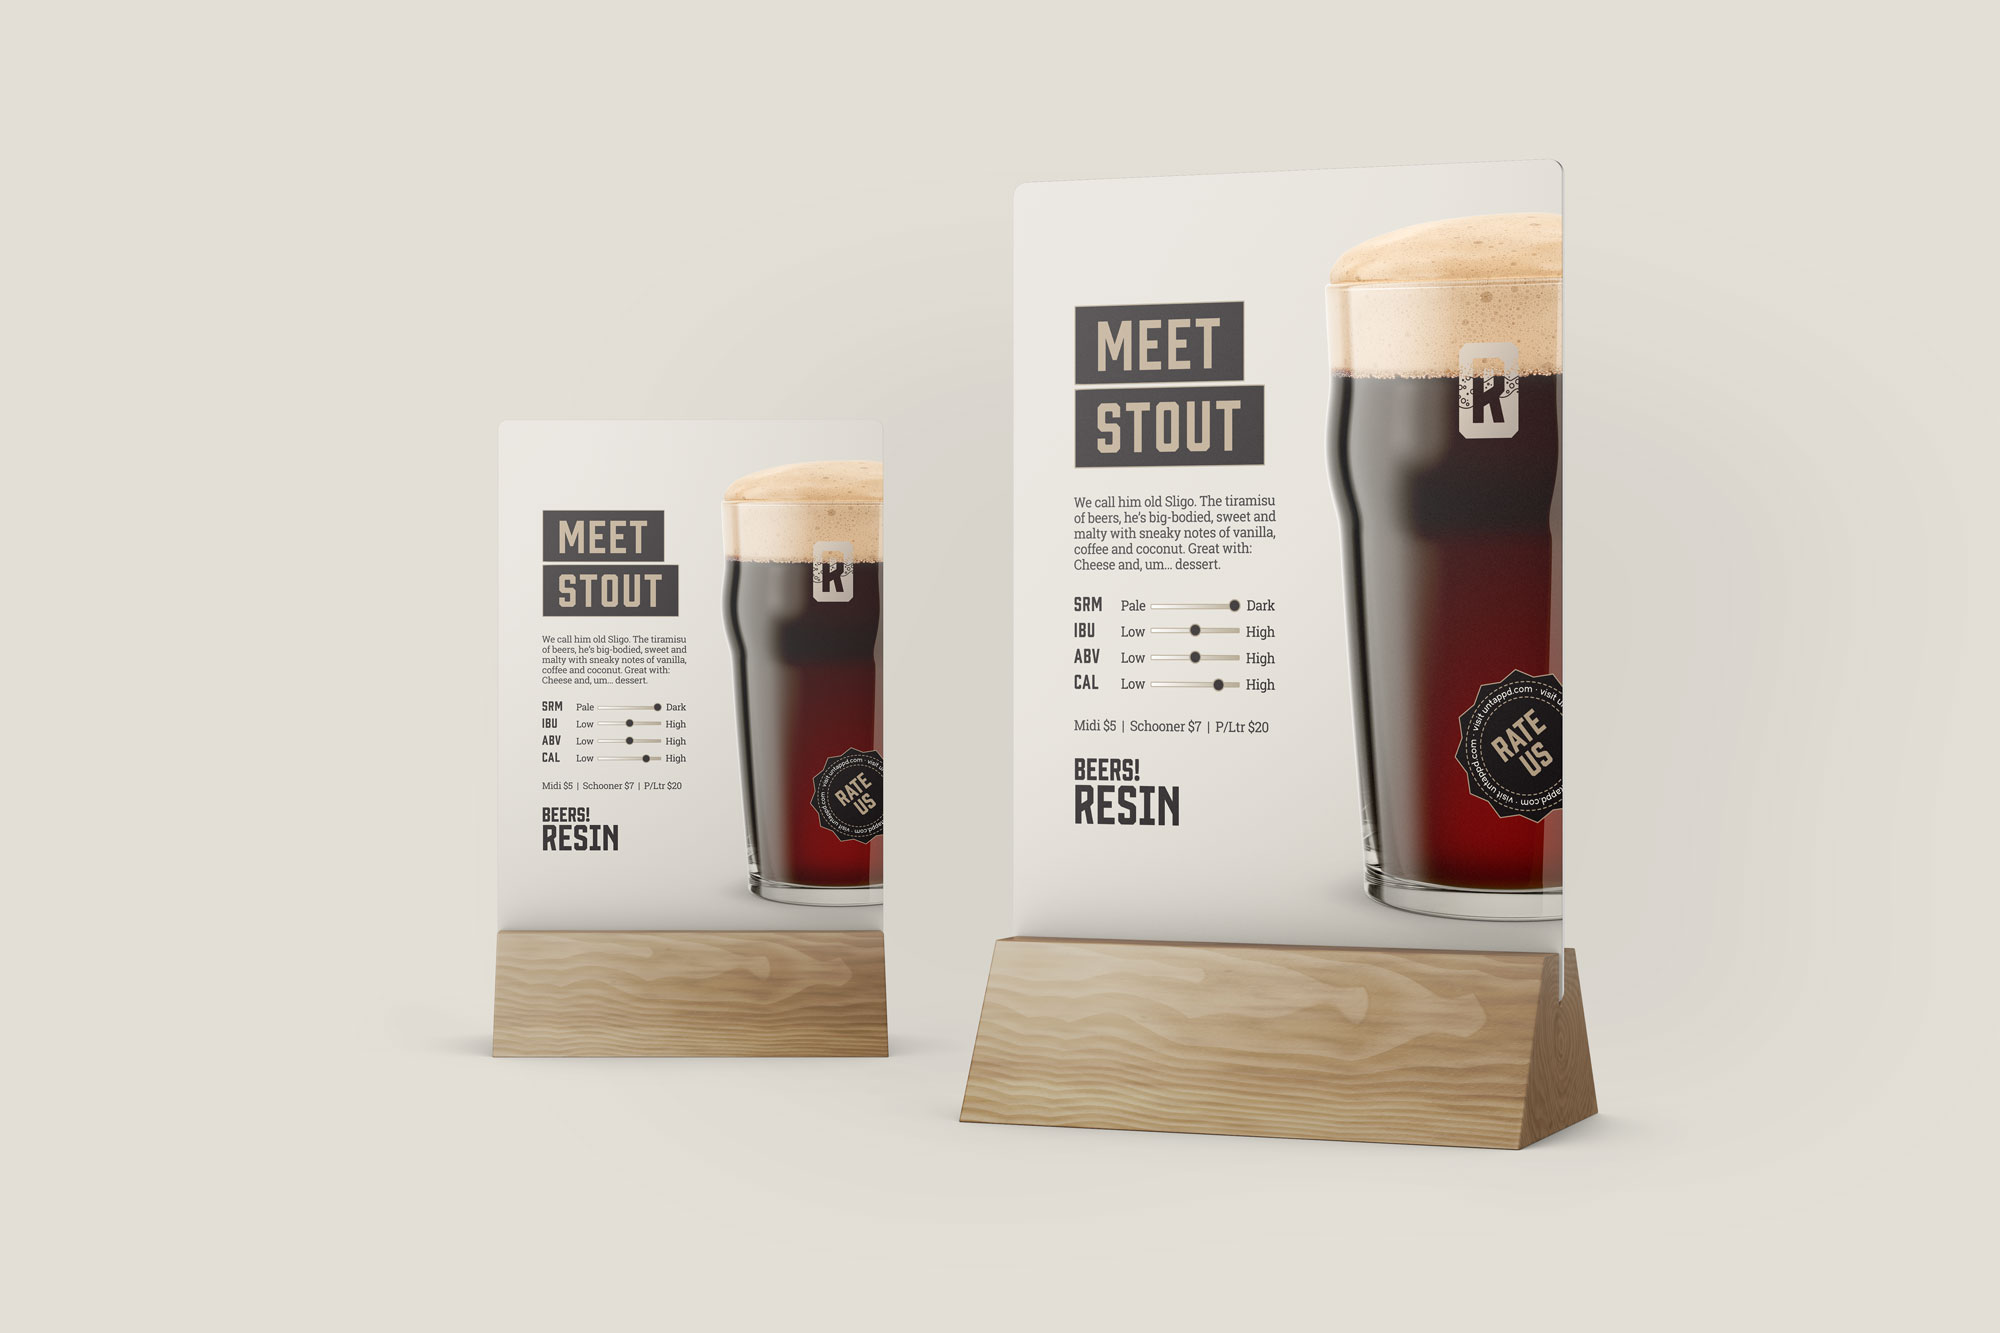 RESIN BREWING TABLE ADS